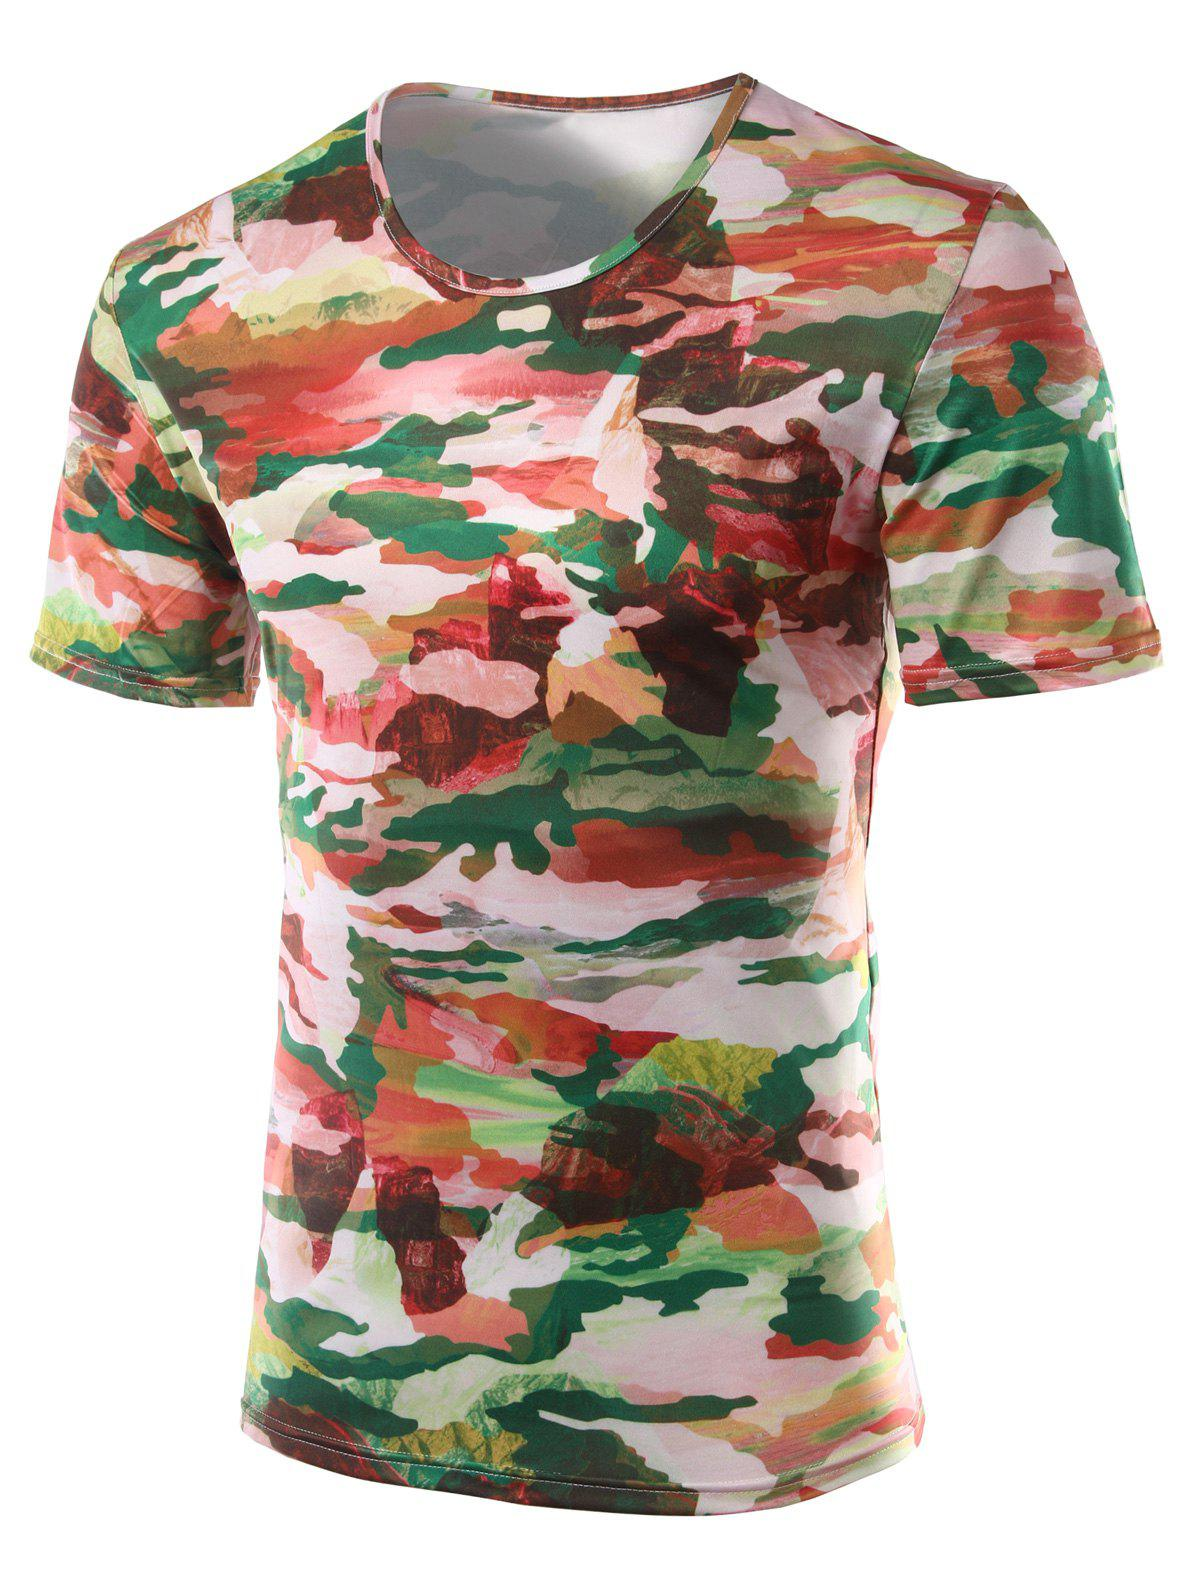 Slim Fit Printed Round Collar Short Sleeves T-Shirts For Men - COLORMIX 2XL